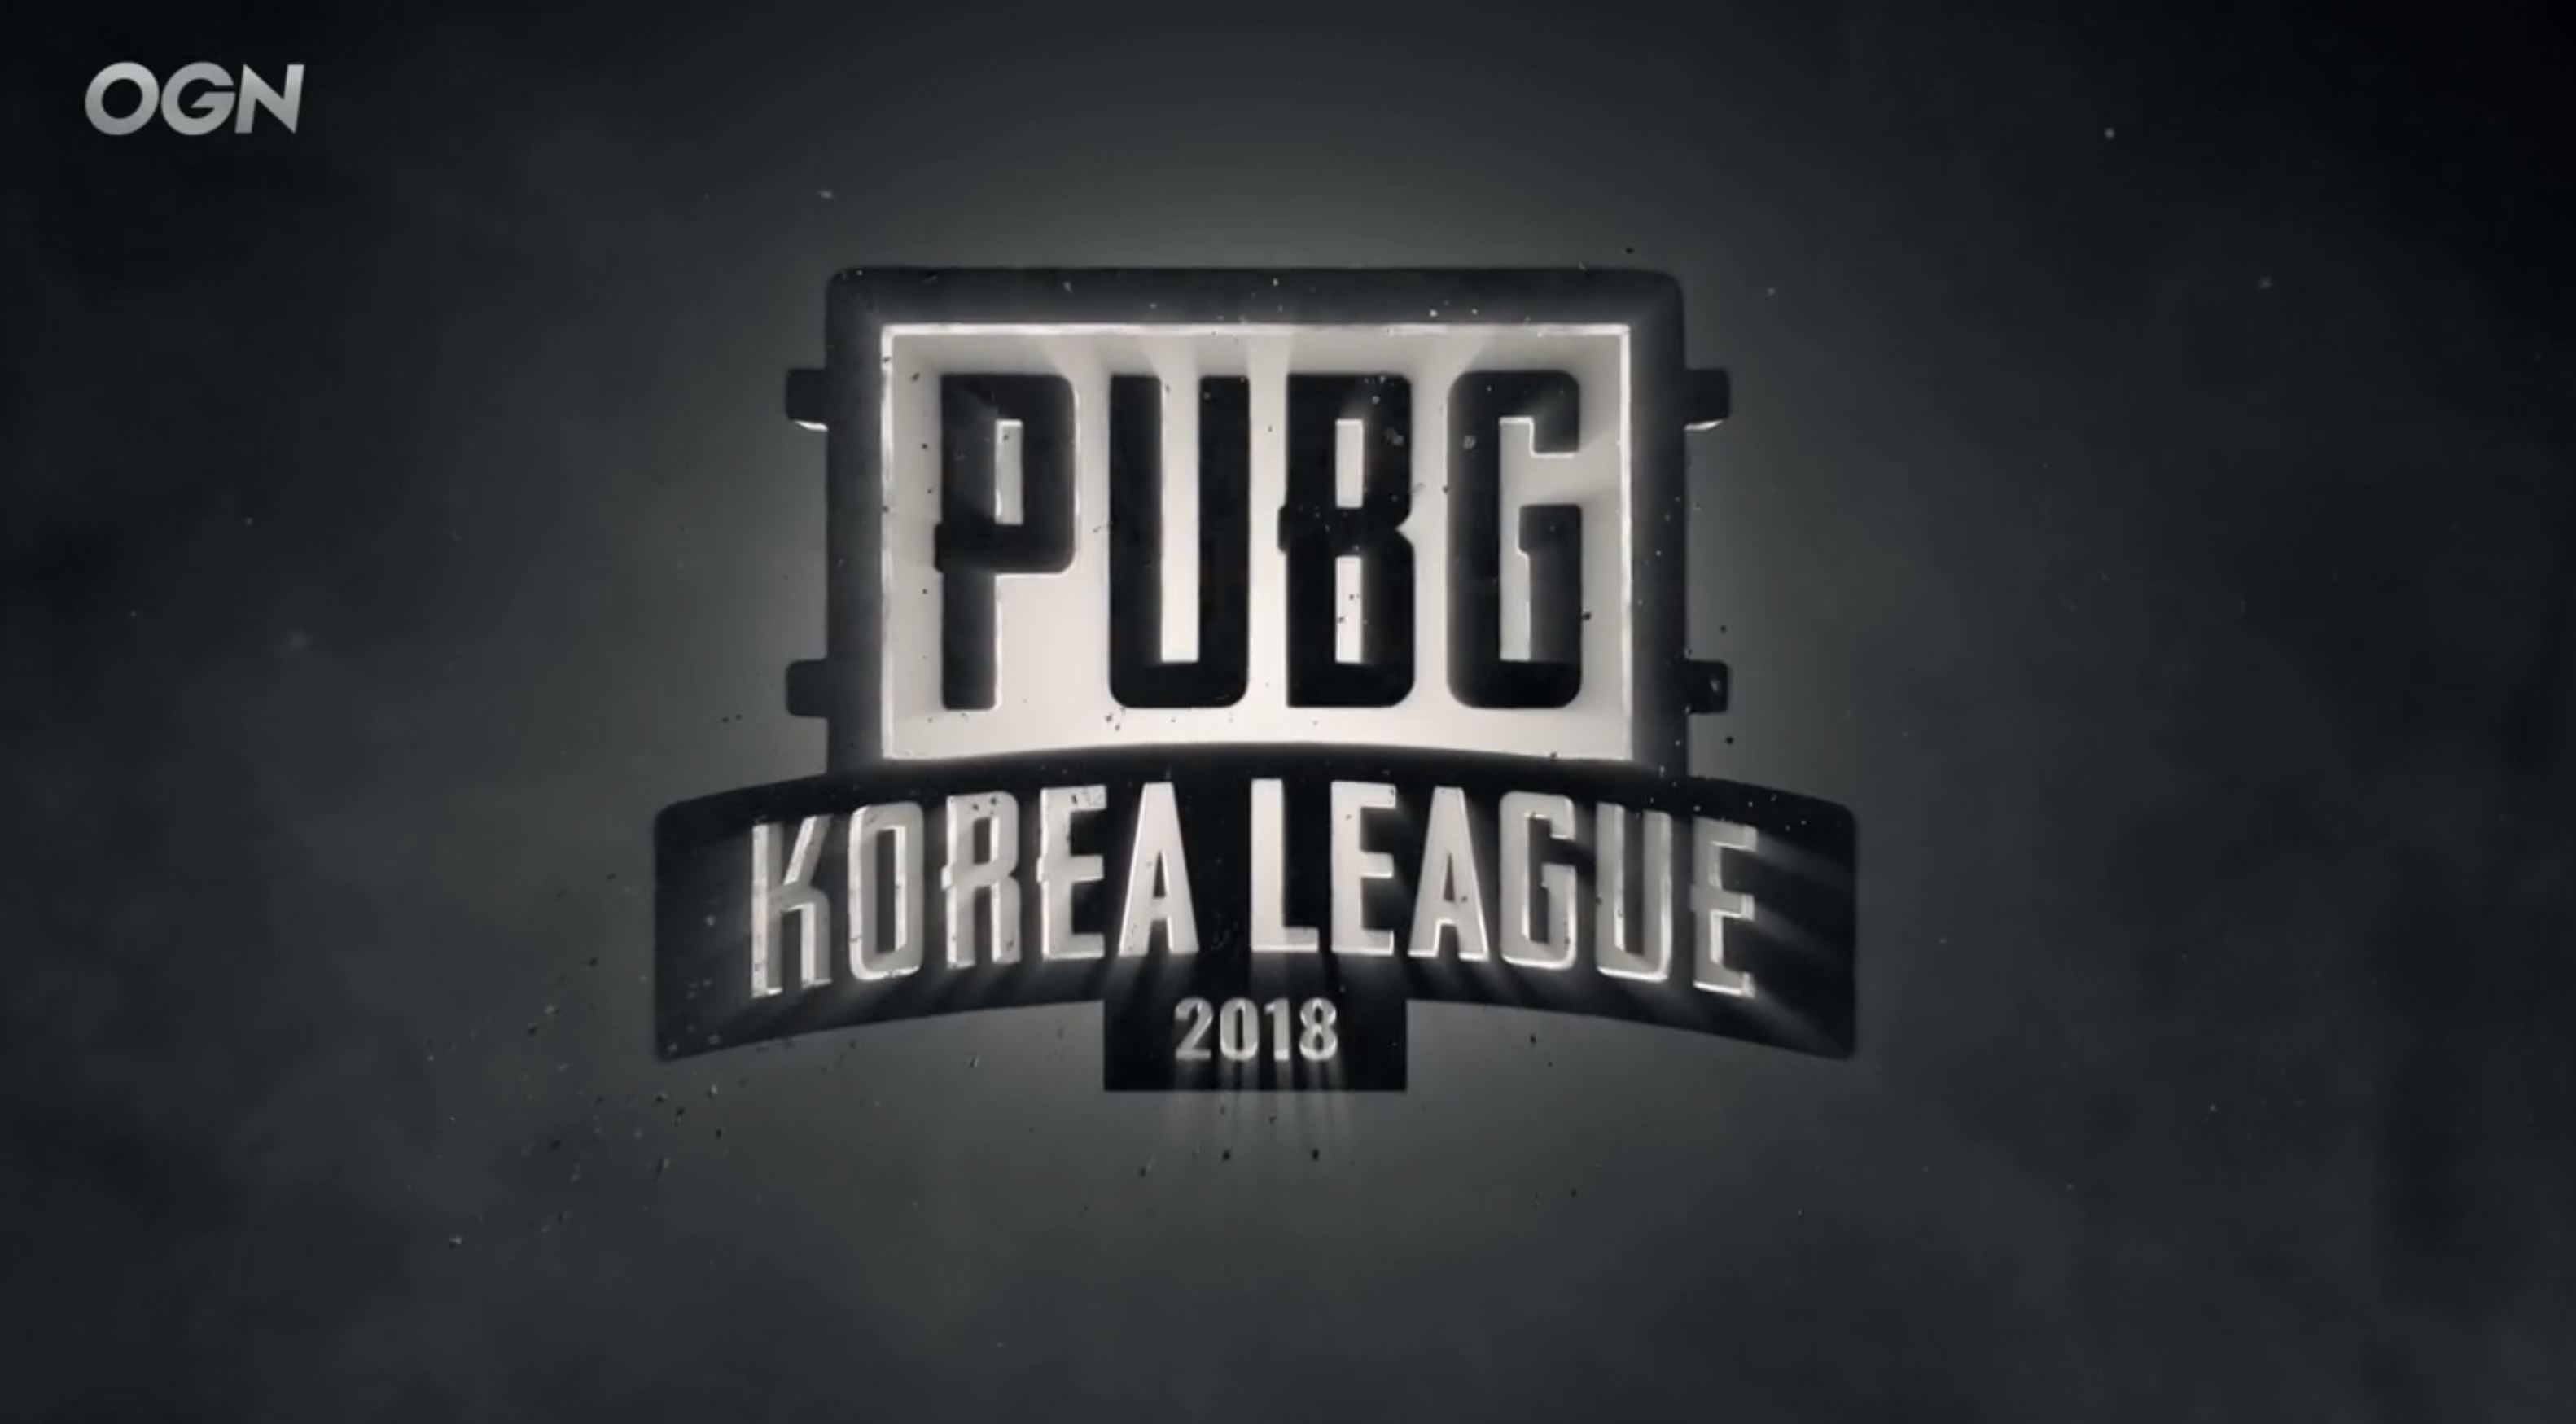 How To Watch Pubg Korea League Week 2 Ogn Esports - the pubg korea league is a competitive pubg series held in korea and organized by pubg corp currently they are in week 2 of their regular season